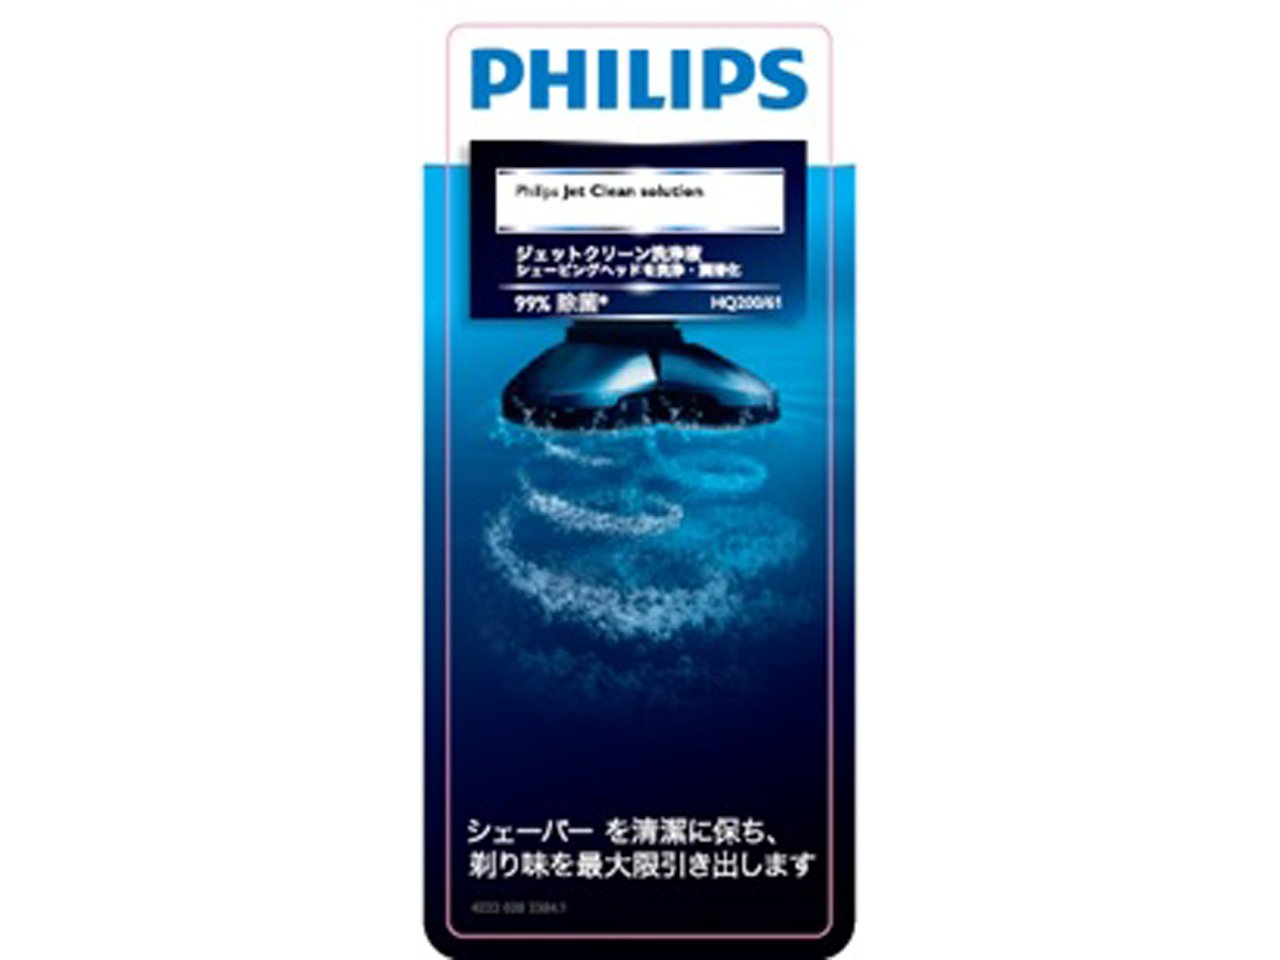 Japanese Men shavers Philips jet clean dedicated cleaning solution [300ml] into HQ200 / 61